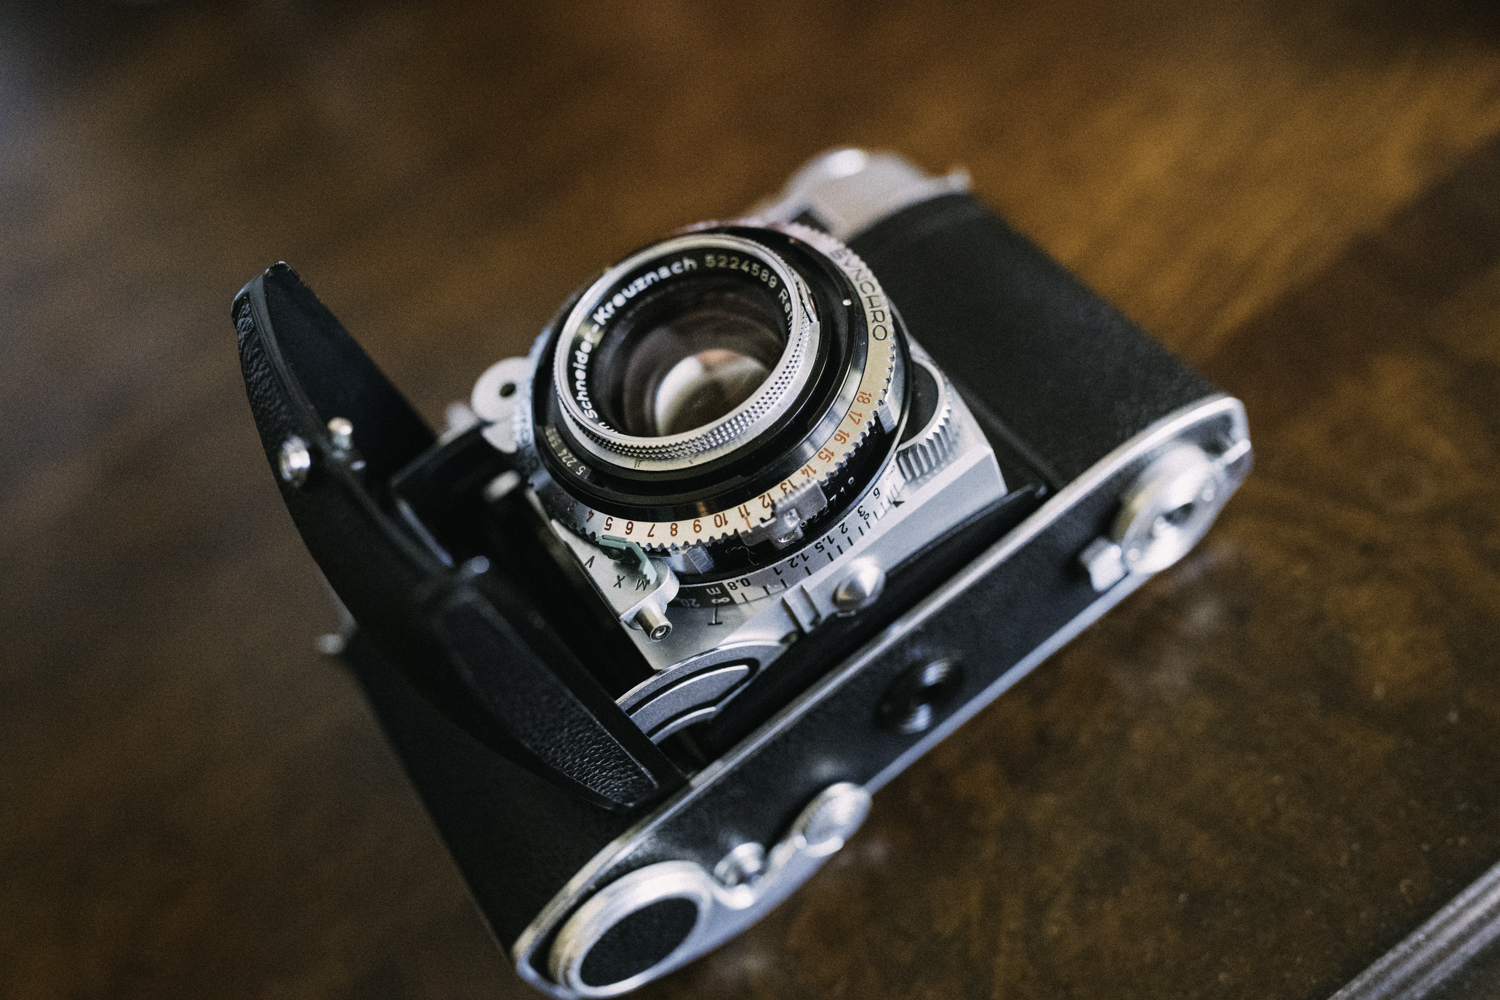 Notice the EV selector under the lens. This is indicated by the numbers 2-18. We also see the knob that is used to help turn the lens for focus. The camera can only be folded when focus is set to infinity.